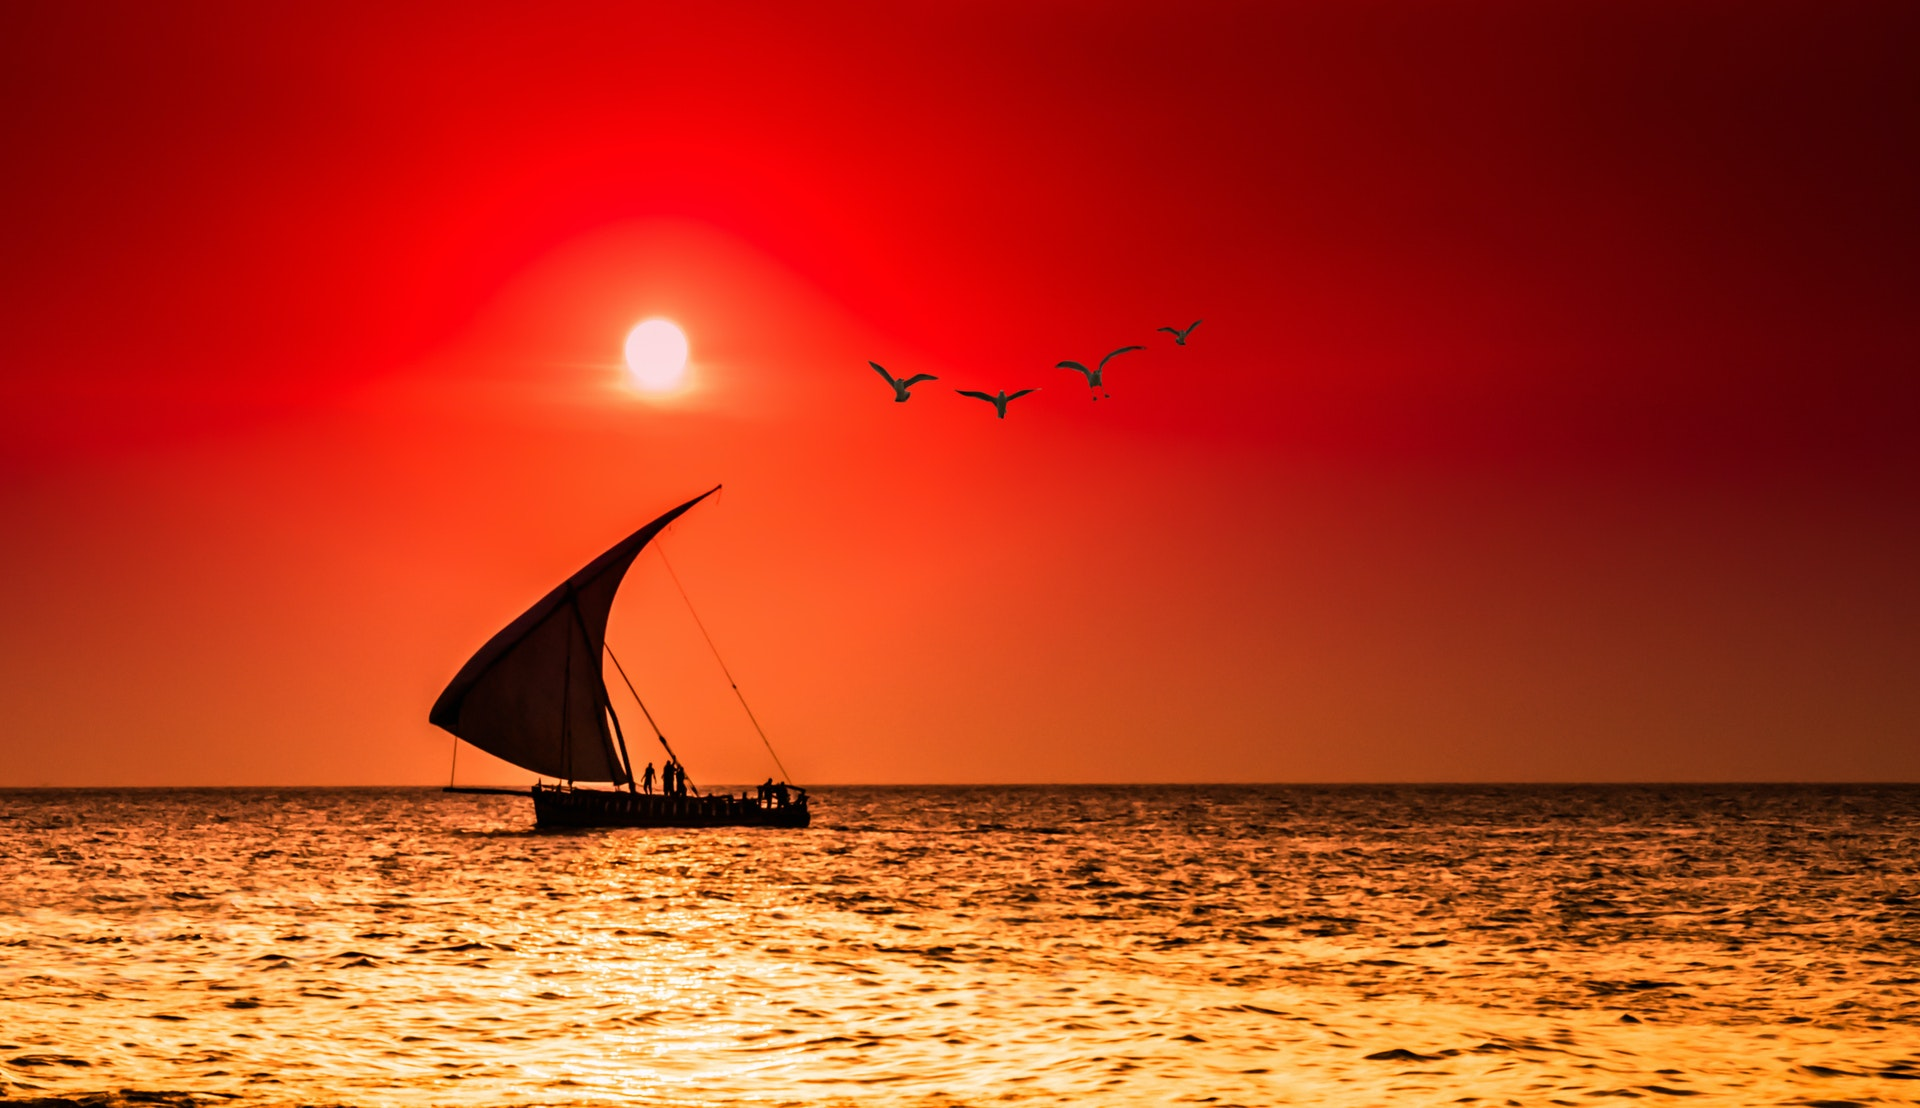 Dhow i solnedgang © bocero1977, Getty Images